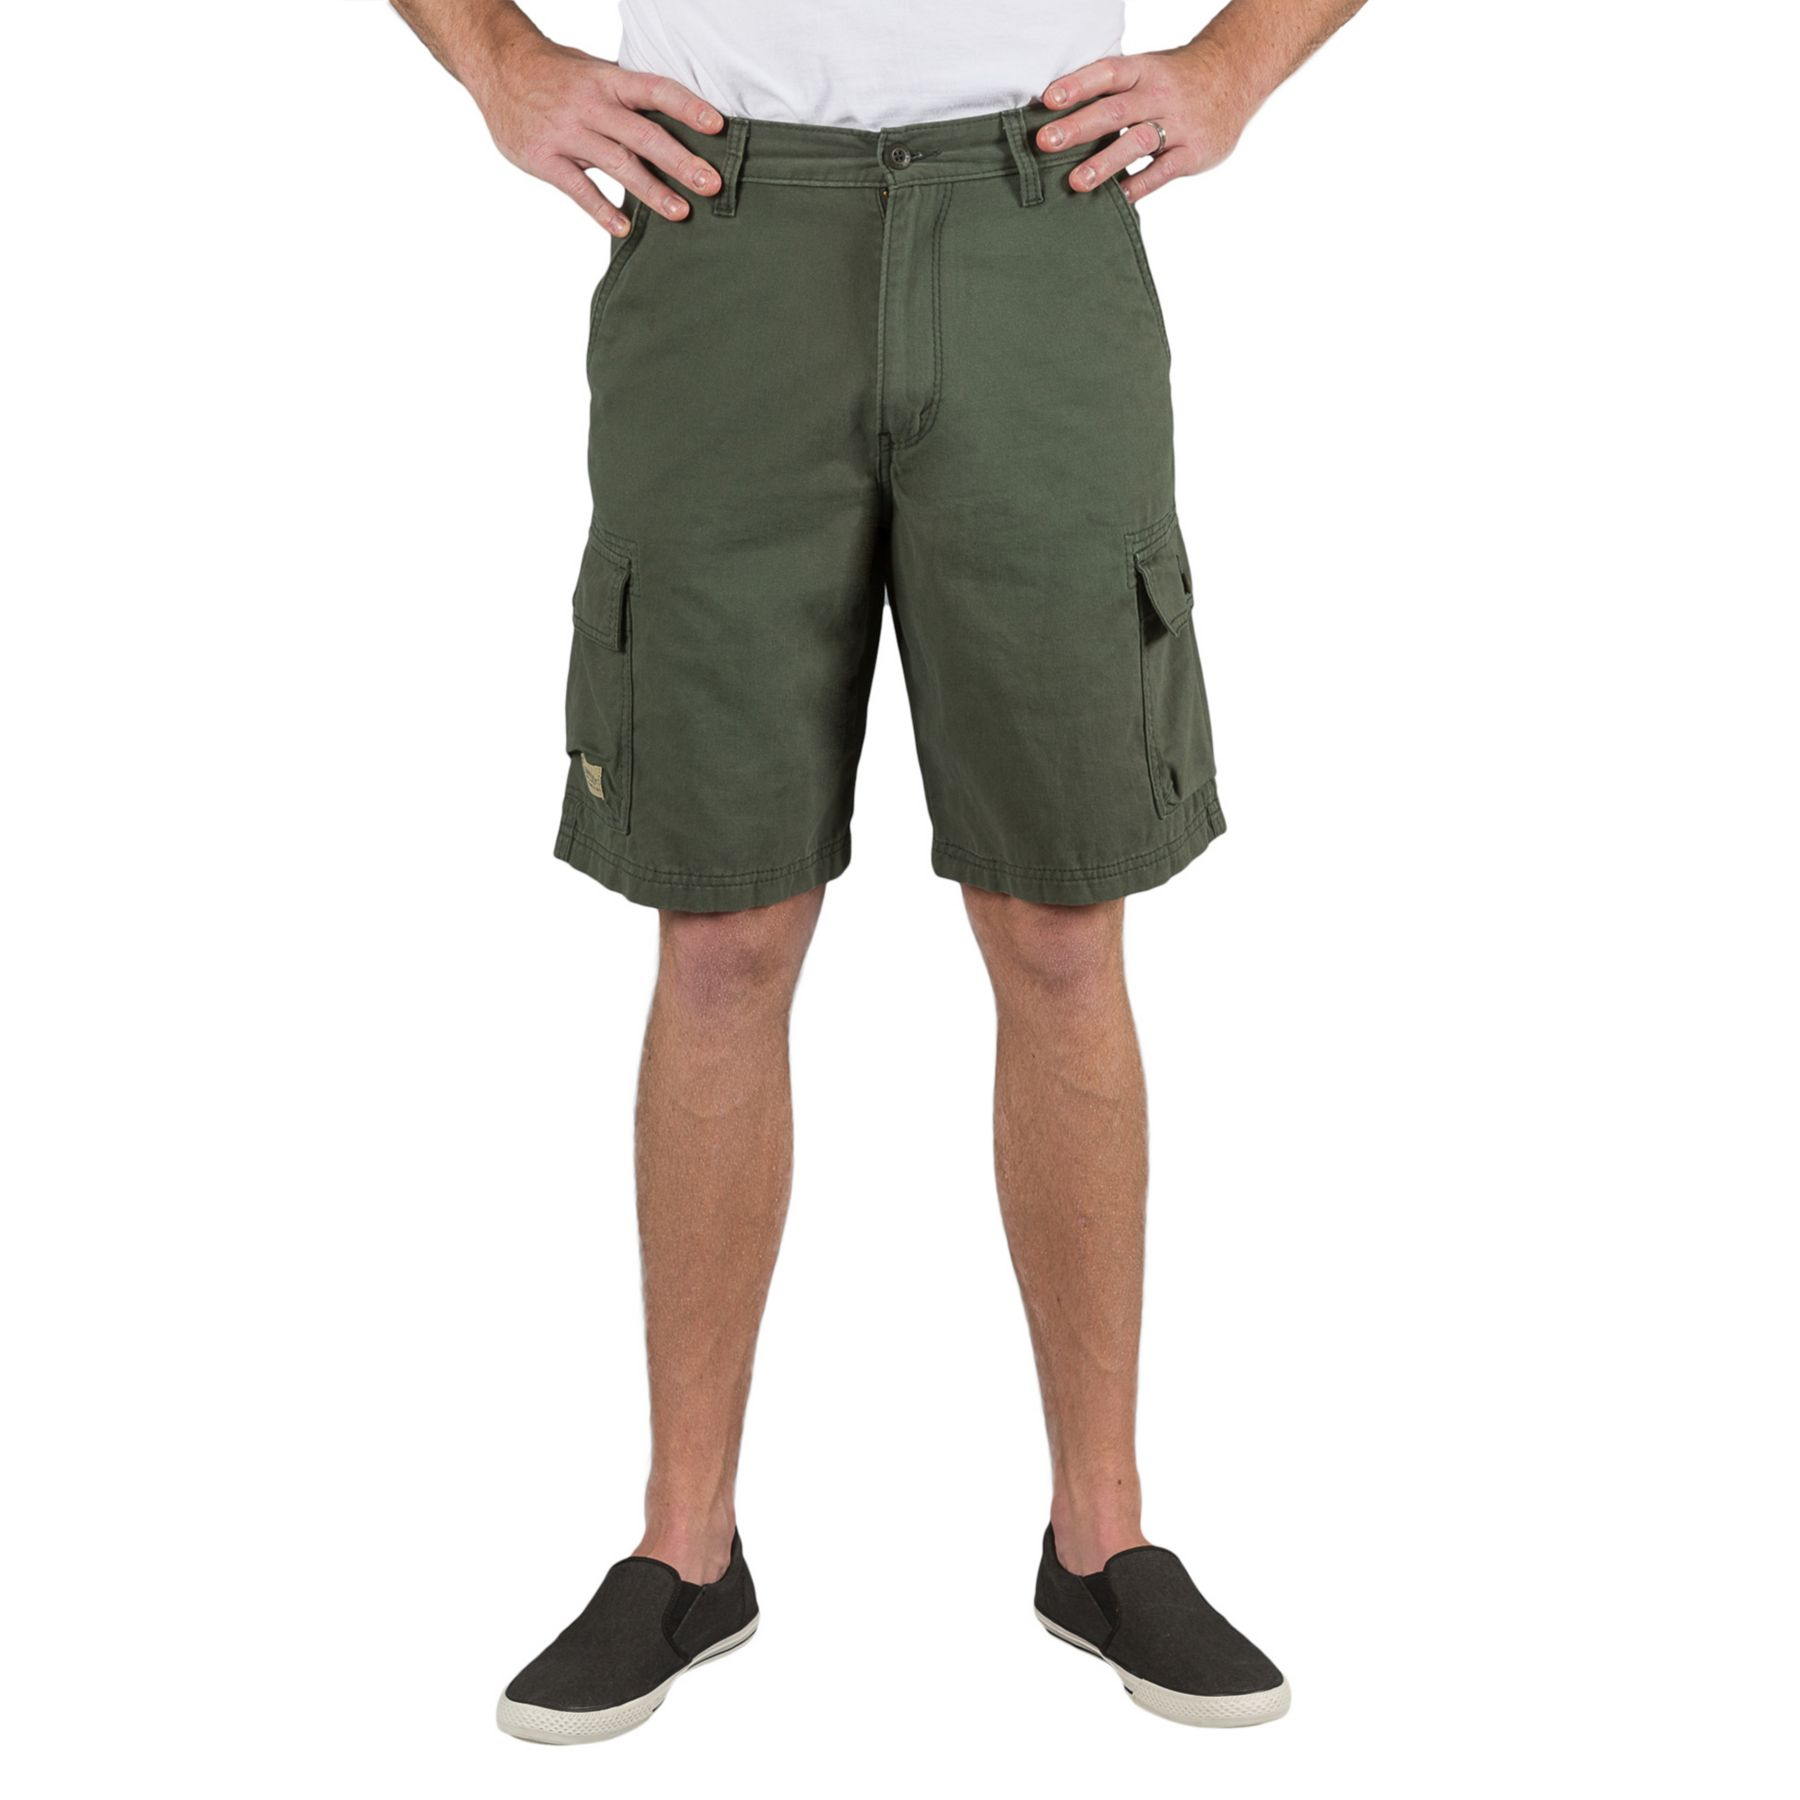 Summer Looks for Men: Cargo Shorts